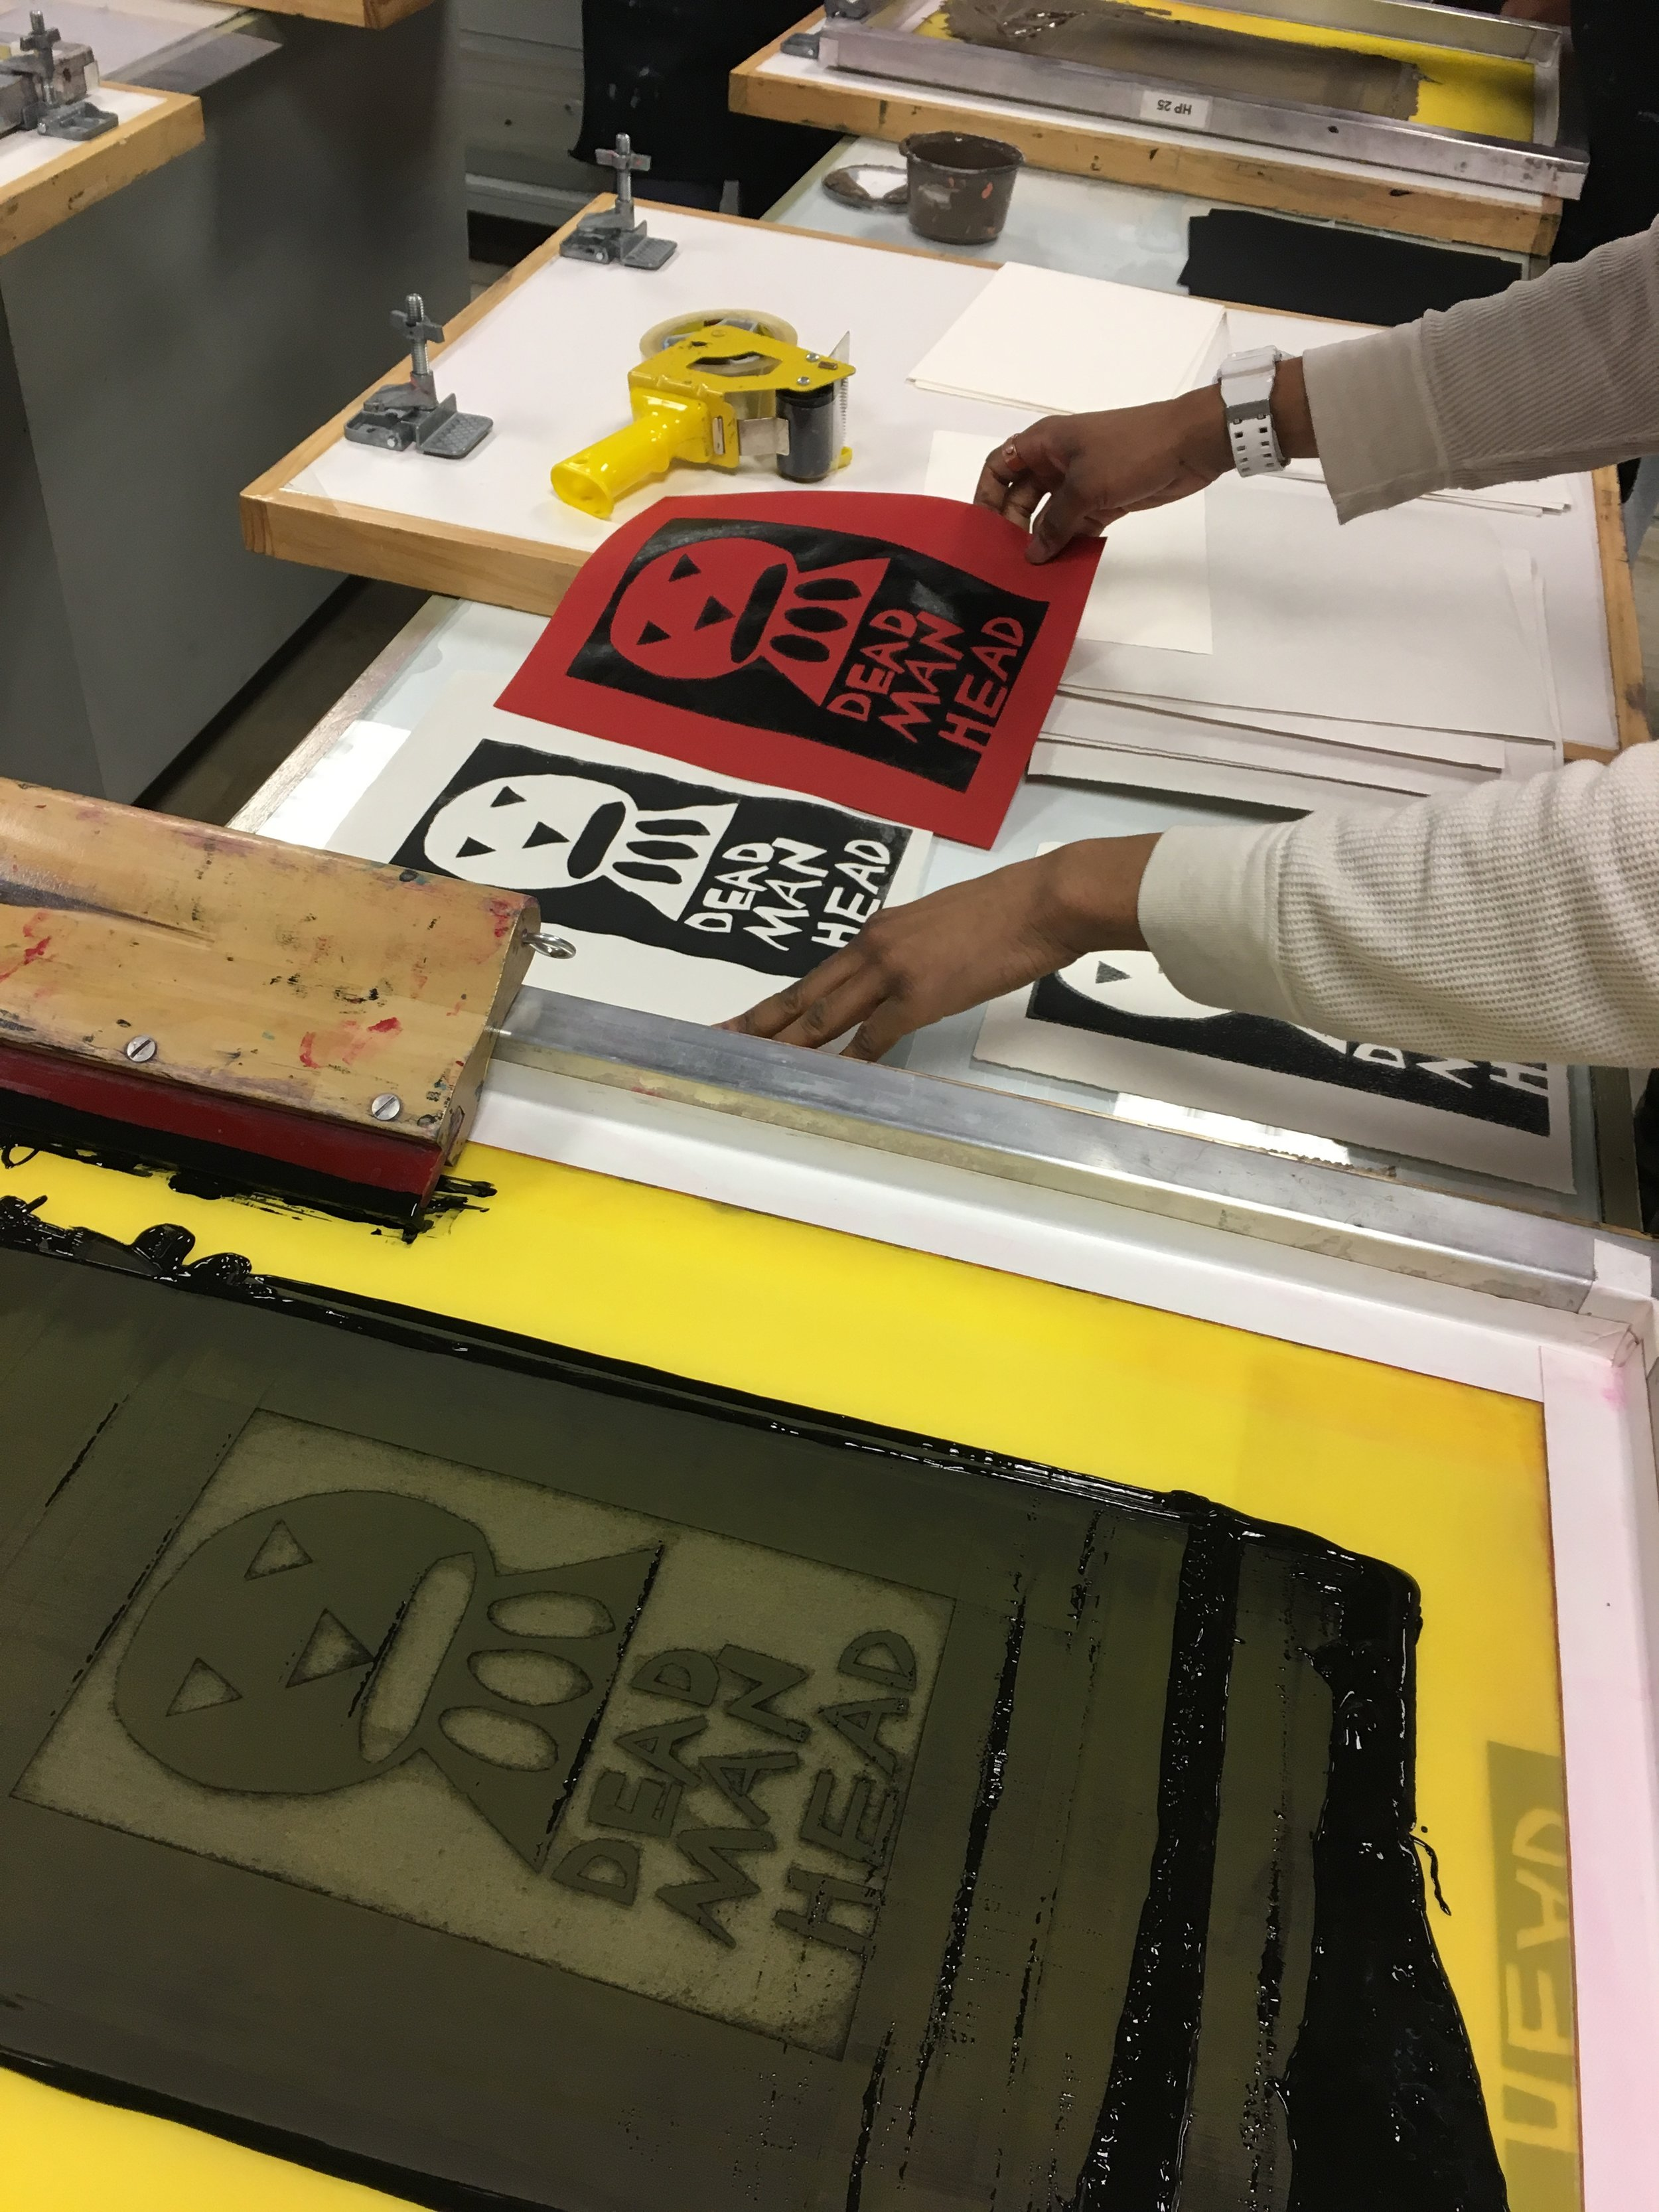 A screenprinting project from a co-taught class at highpoint center for printmaking